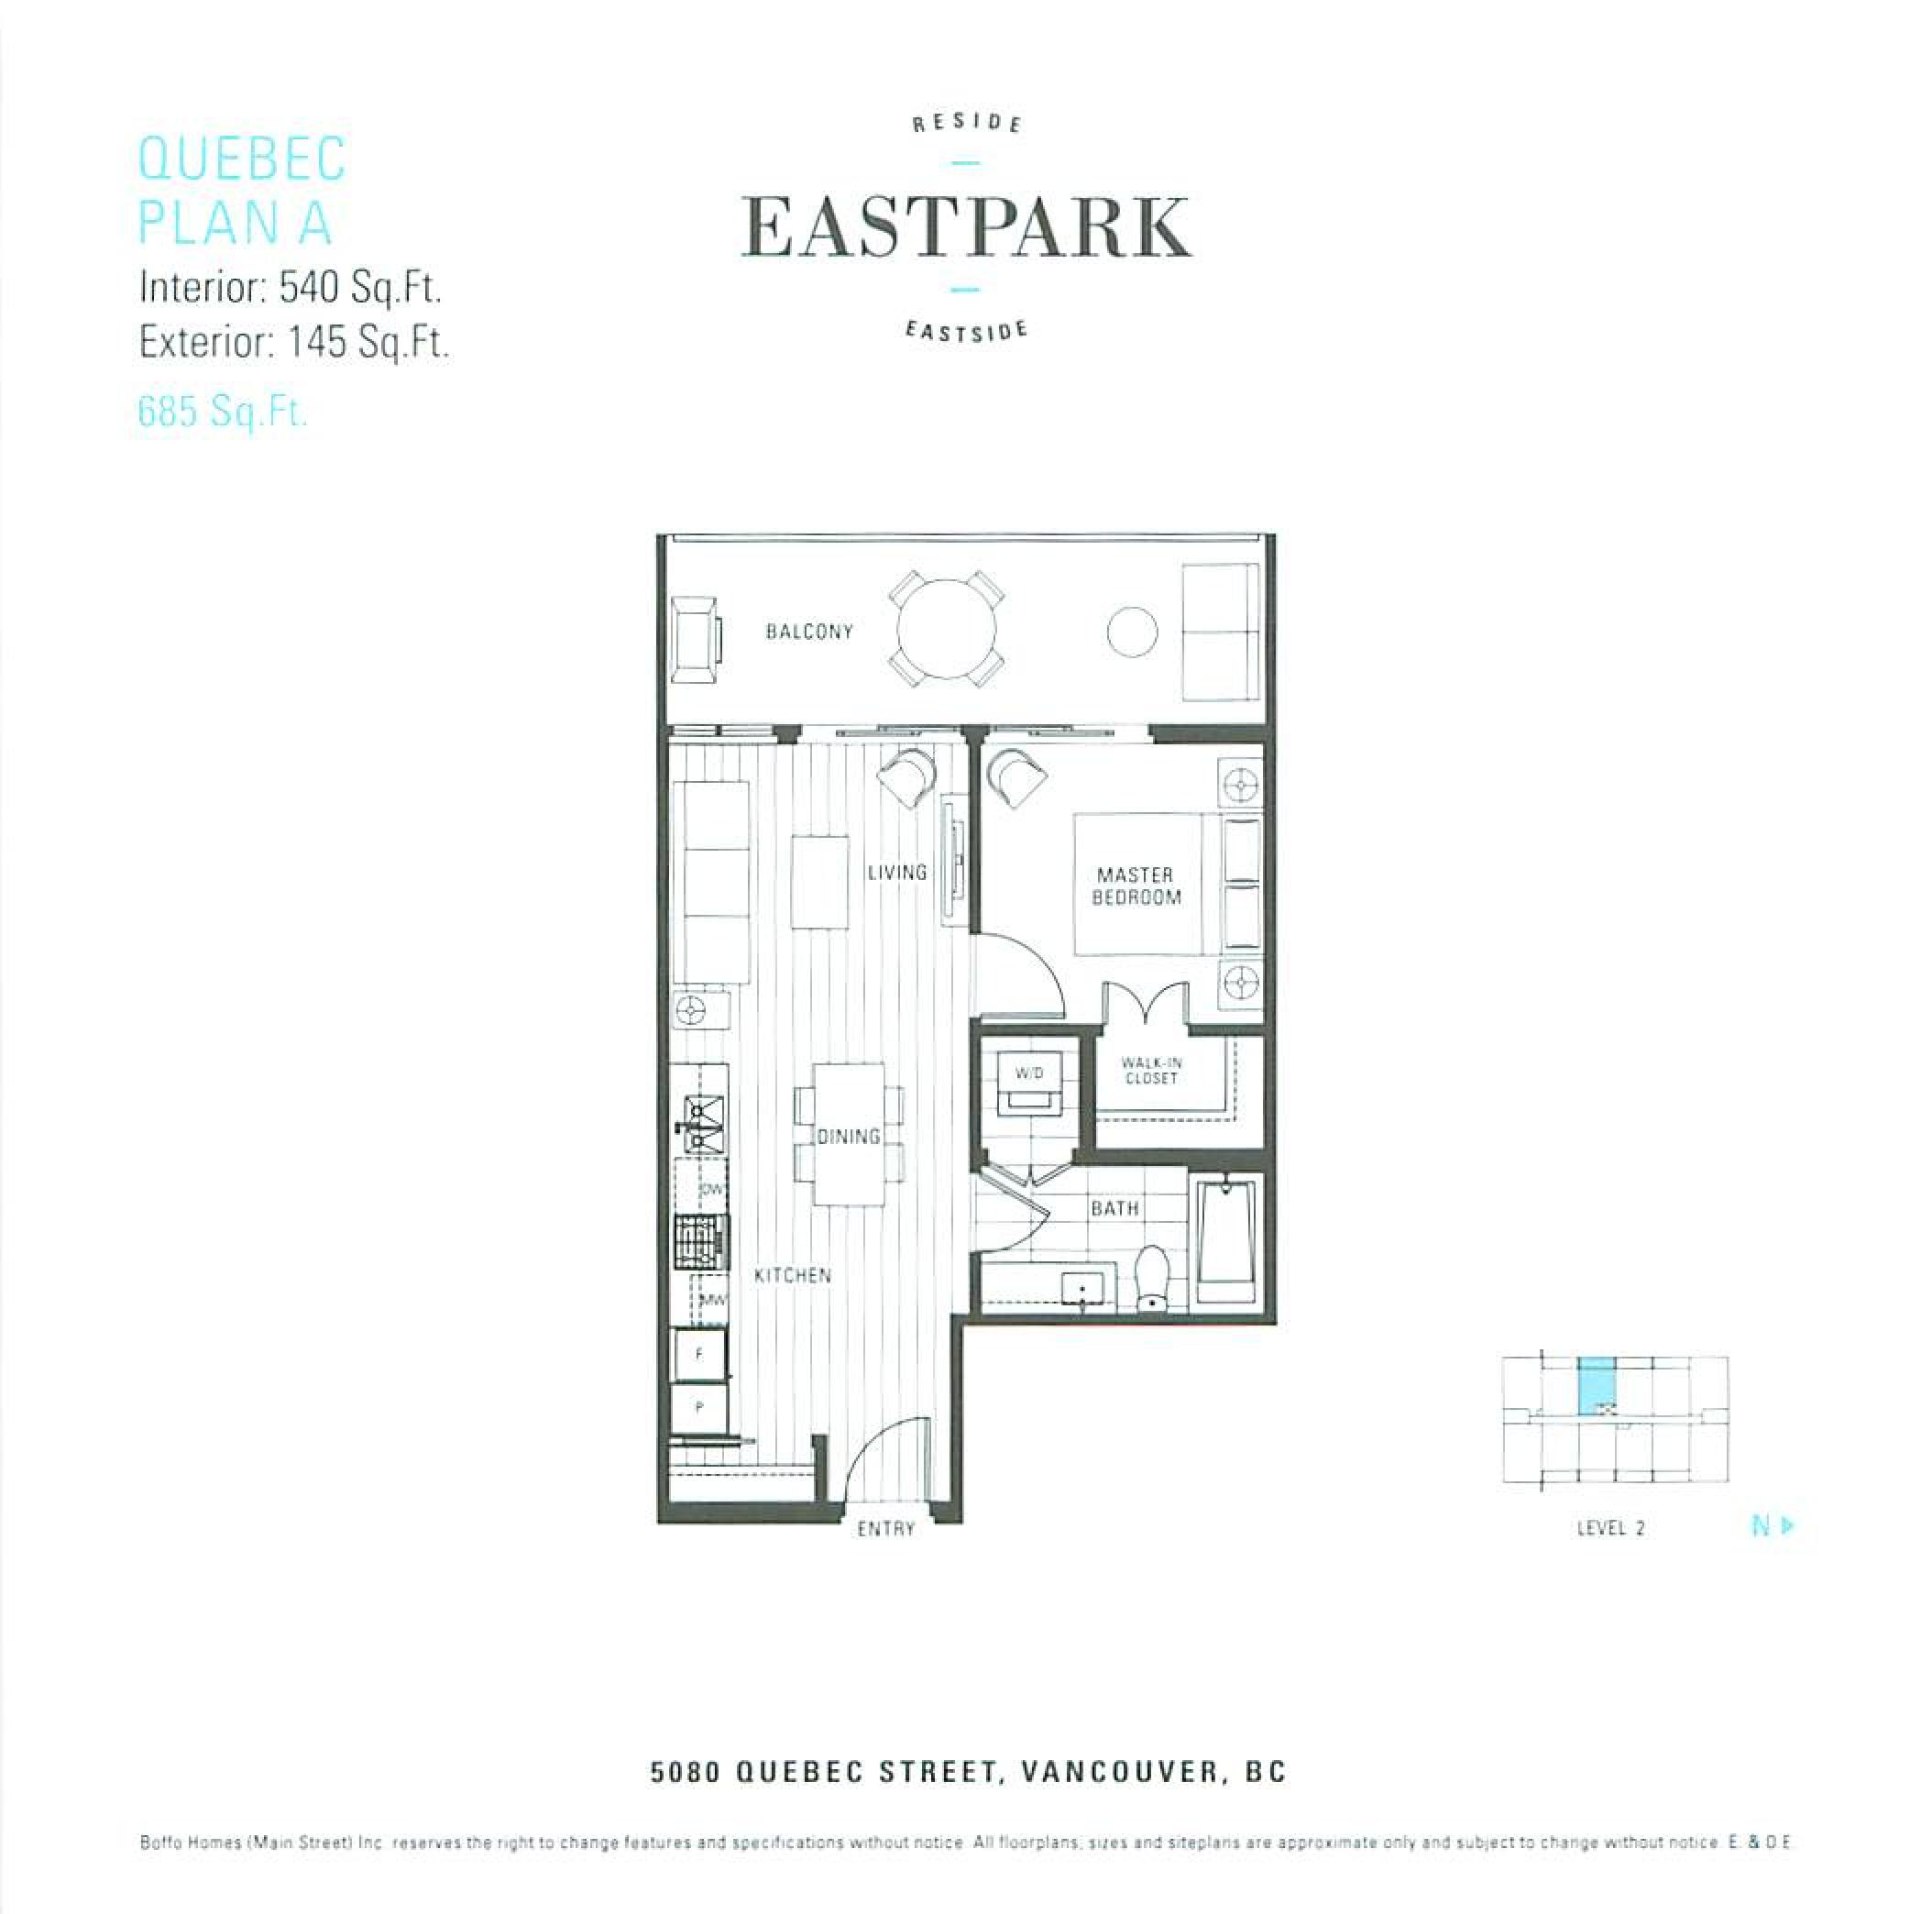 EastPark Quebec Smaller Floor Plans Mike Stewart-page-001